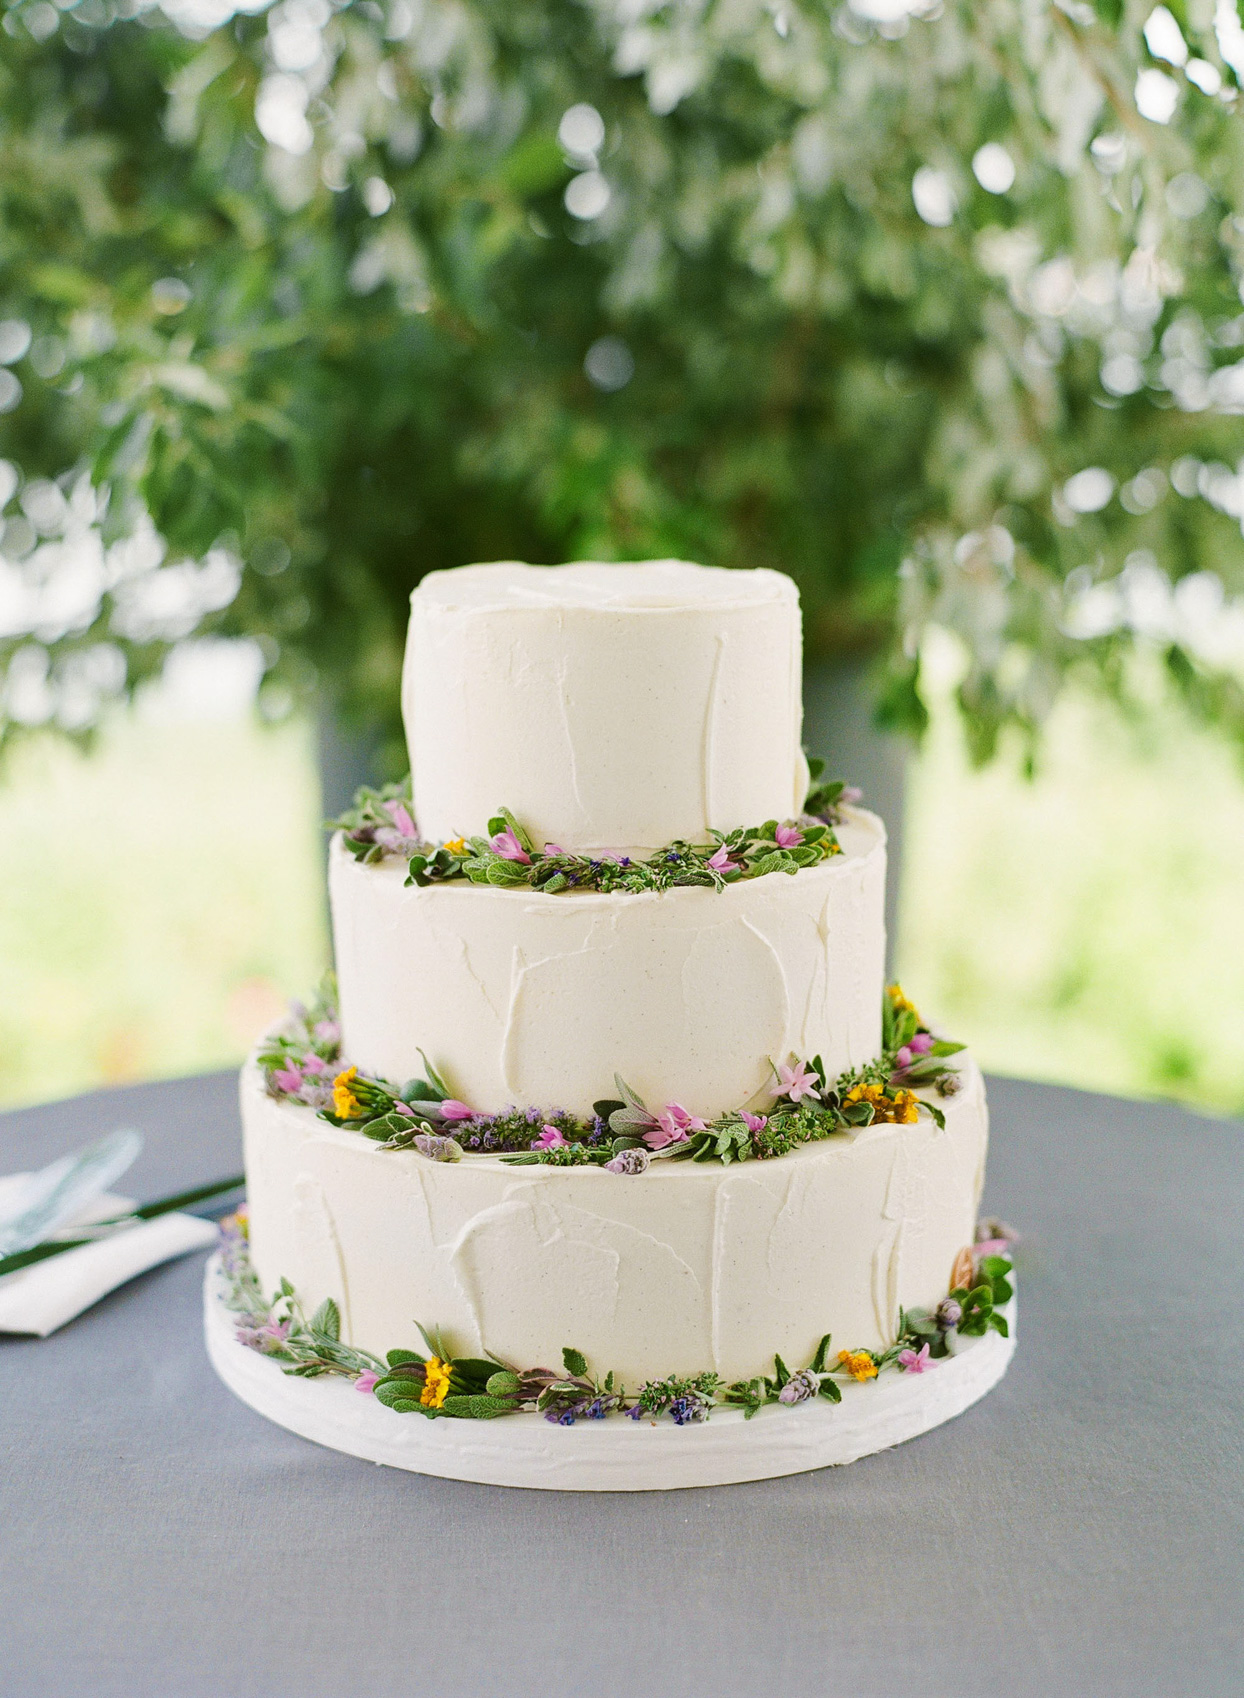 three tiered wedding cake with delicate wild flower decorations